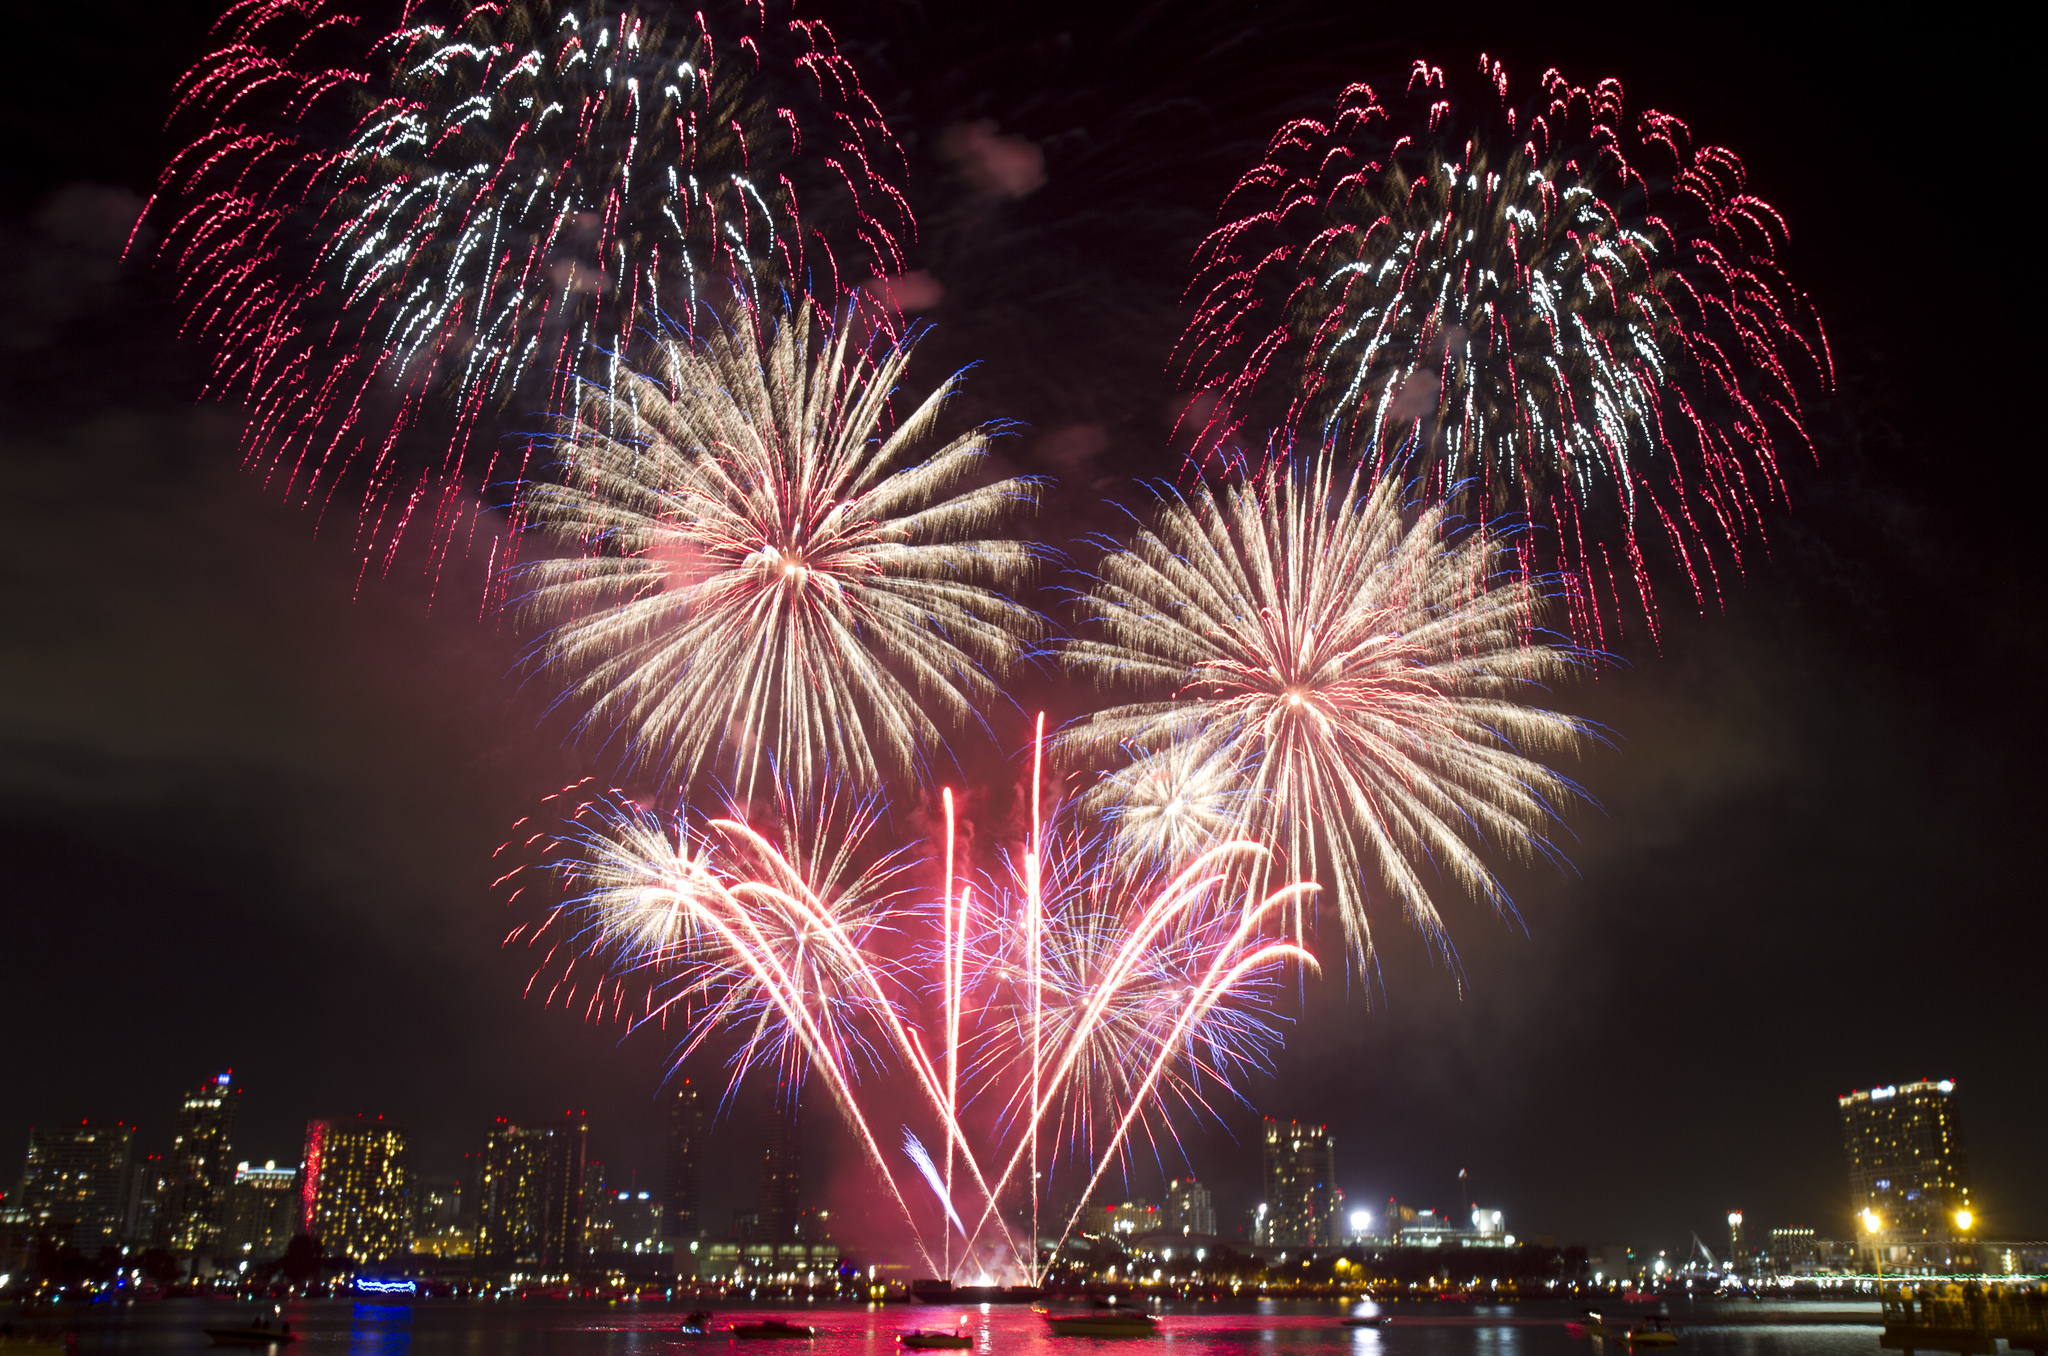 The Best Fireworks Displays In Southern California In 2016